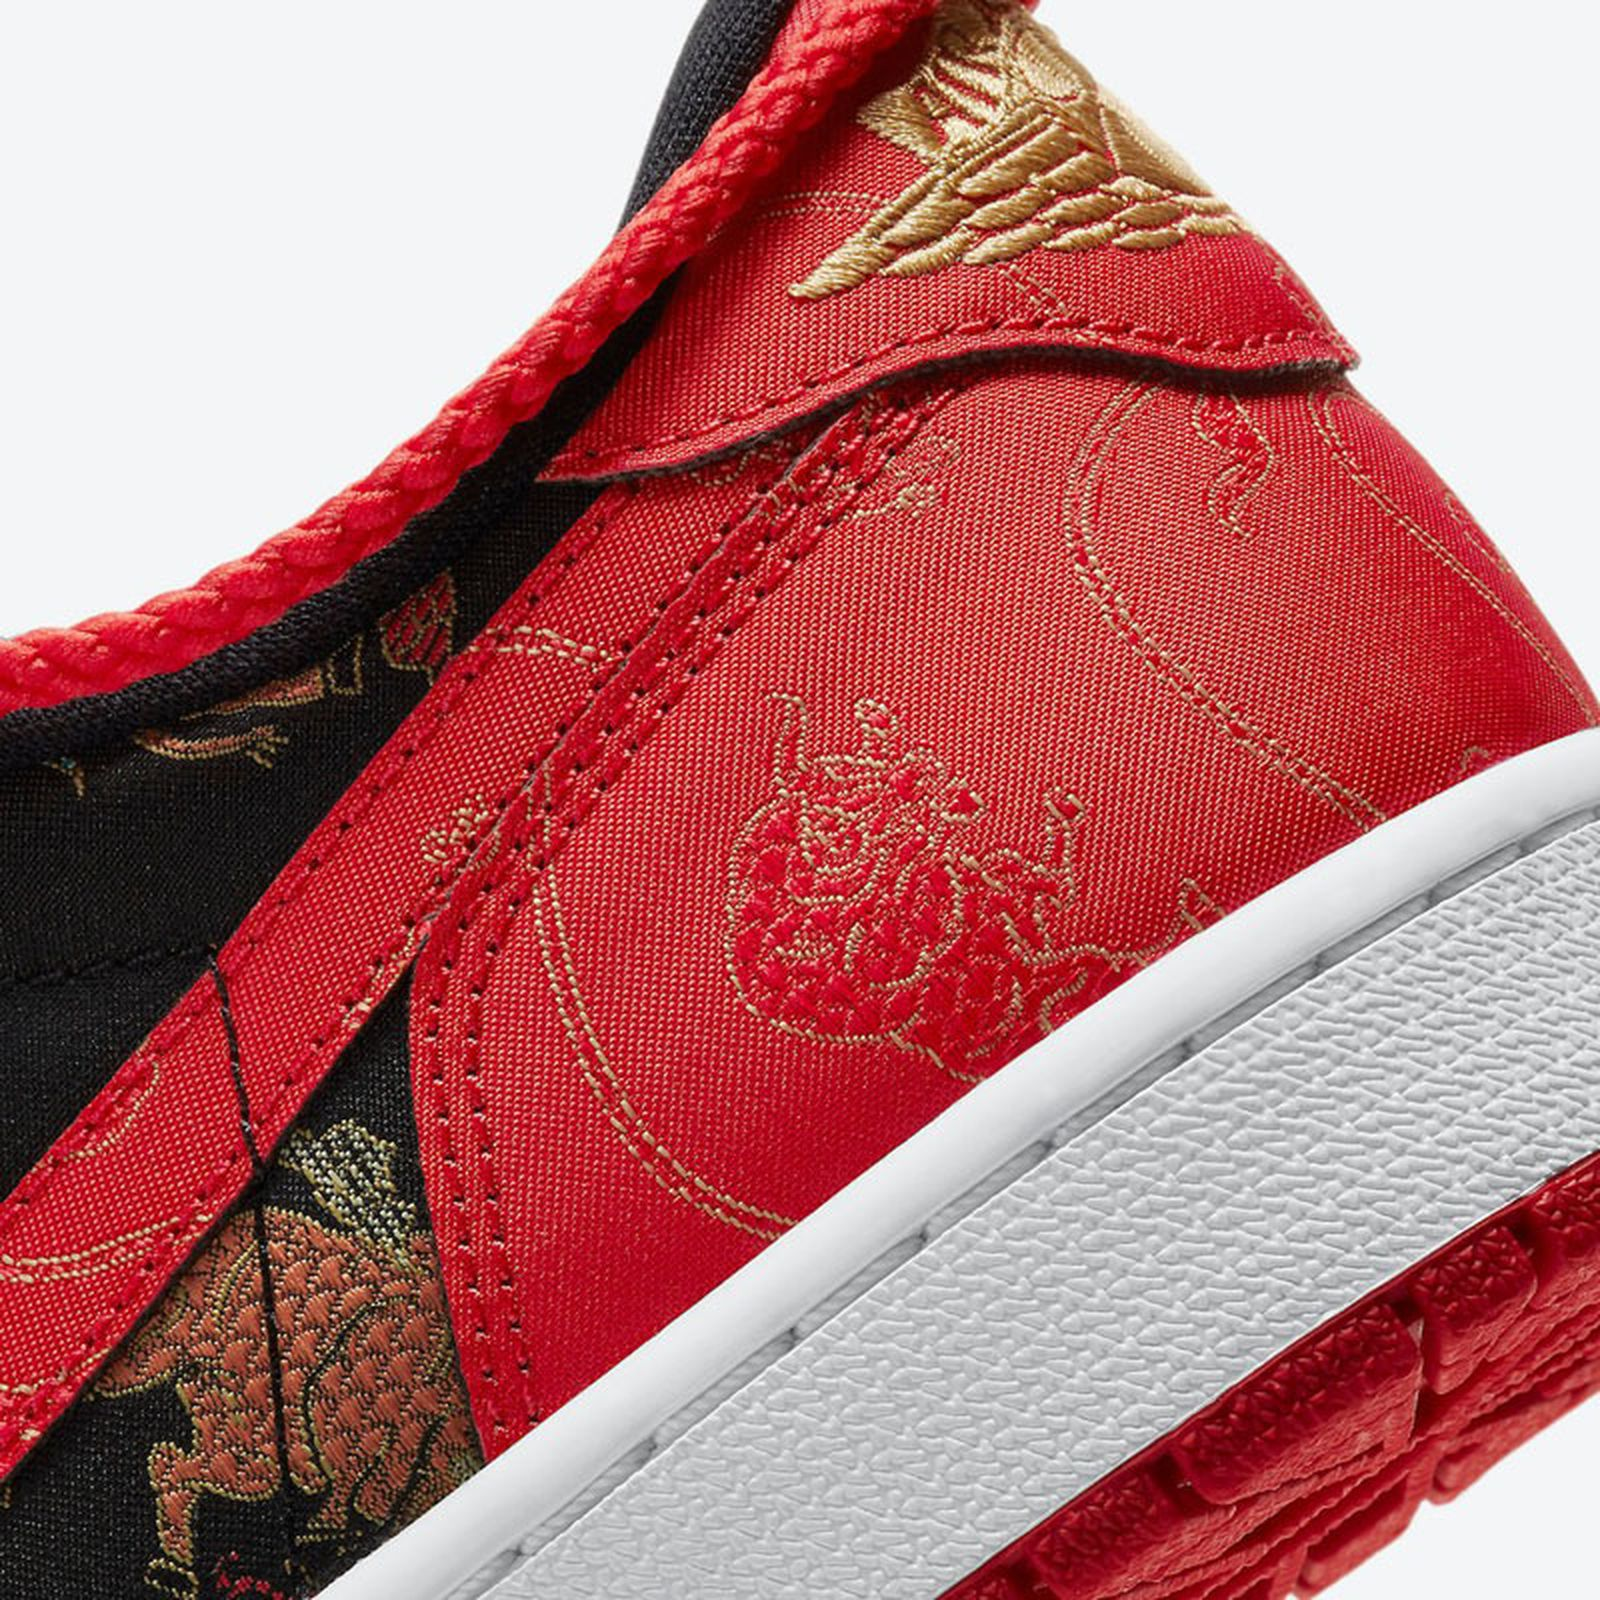 nike-air-jordan-1-low-cny-2021-release-date-price-03